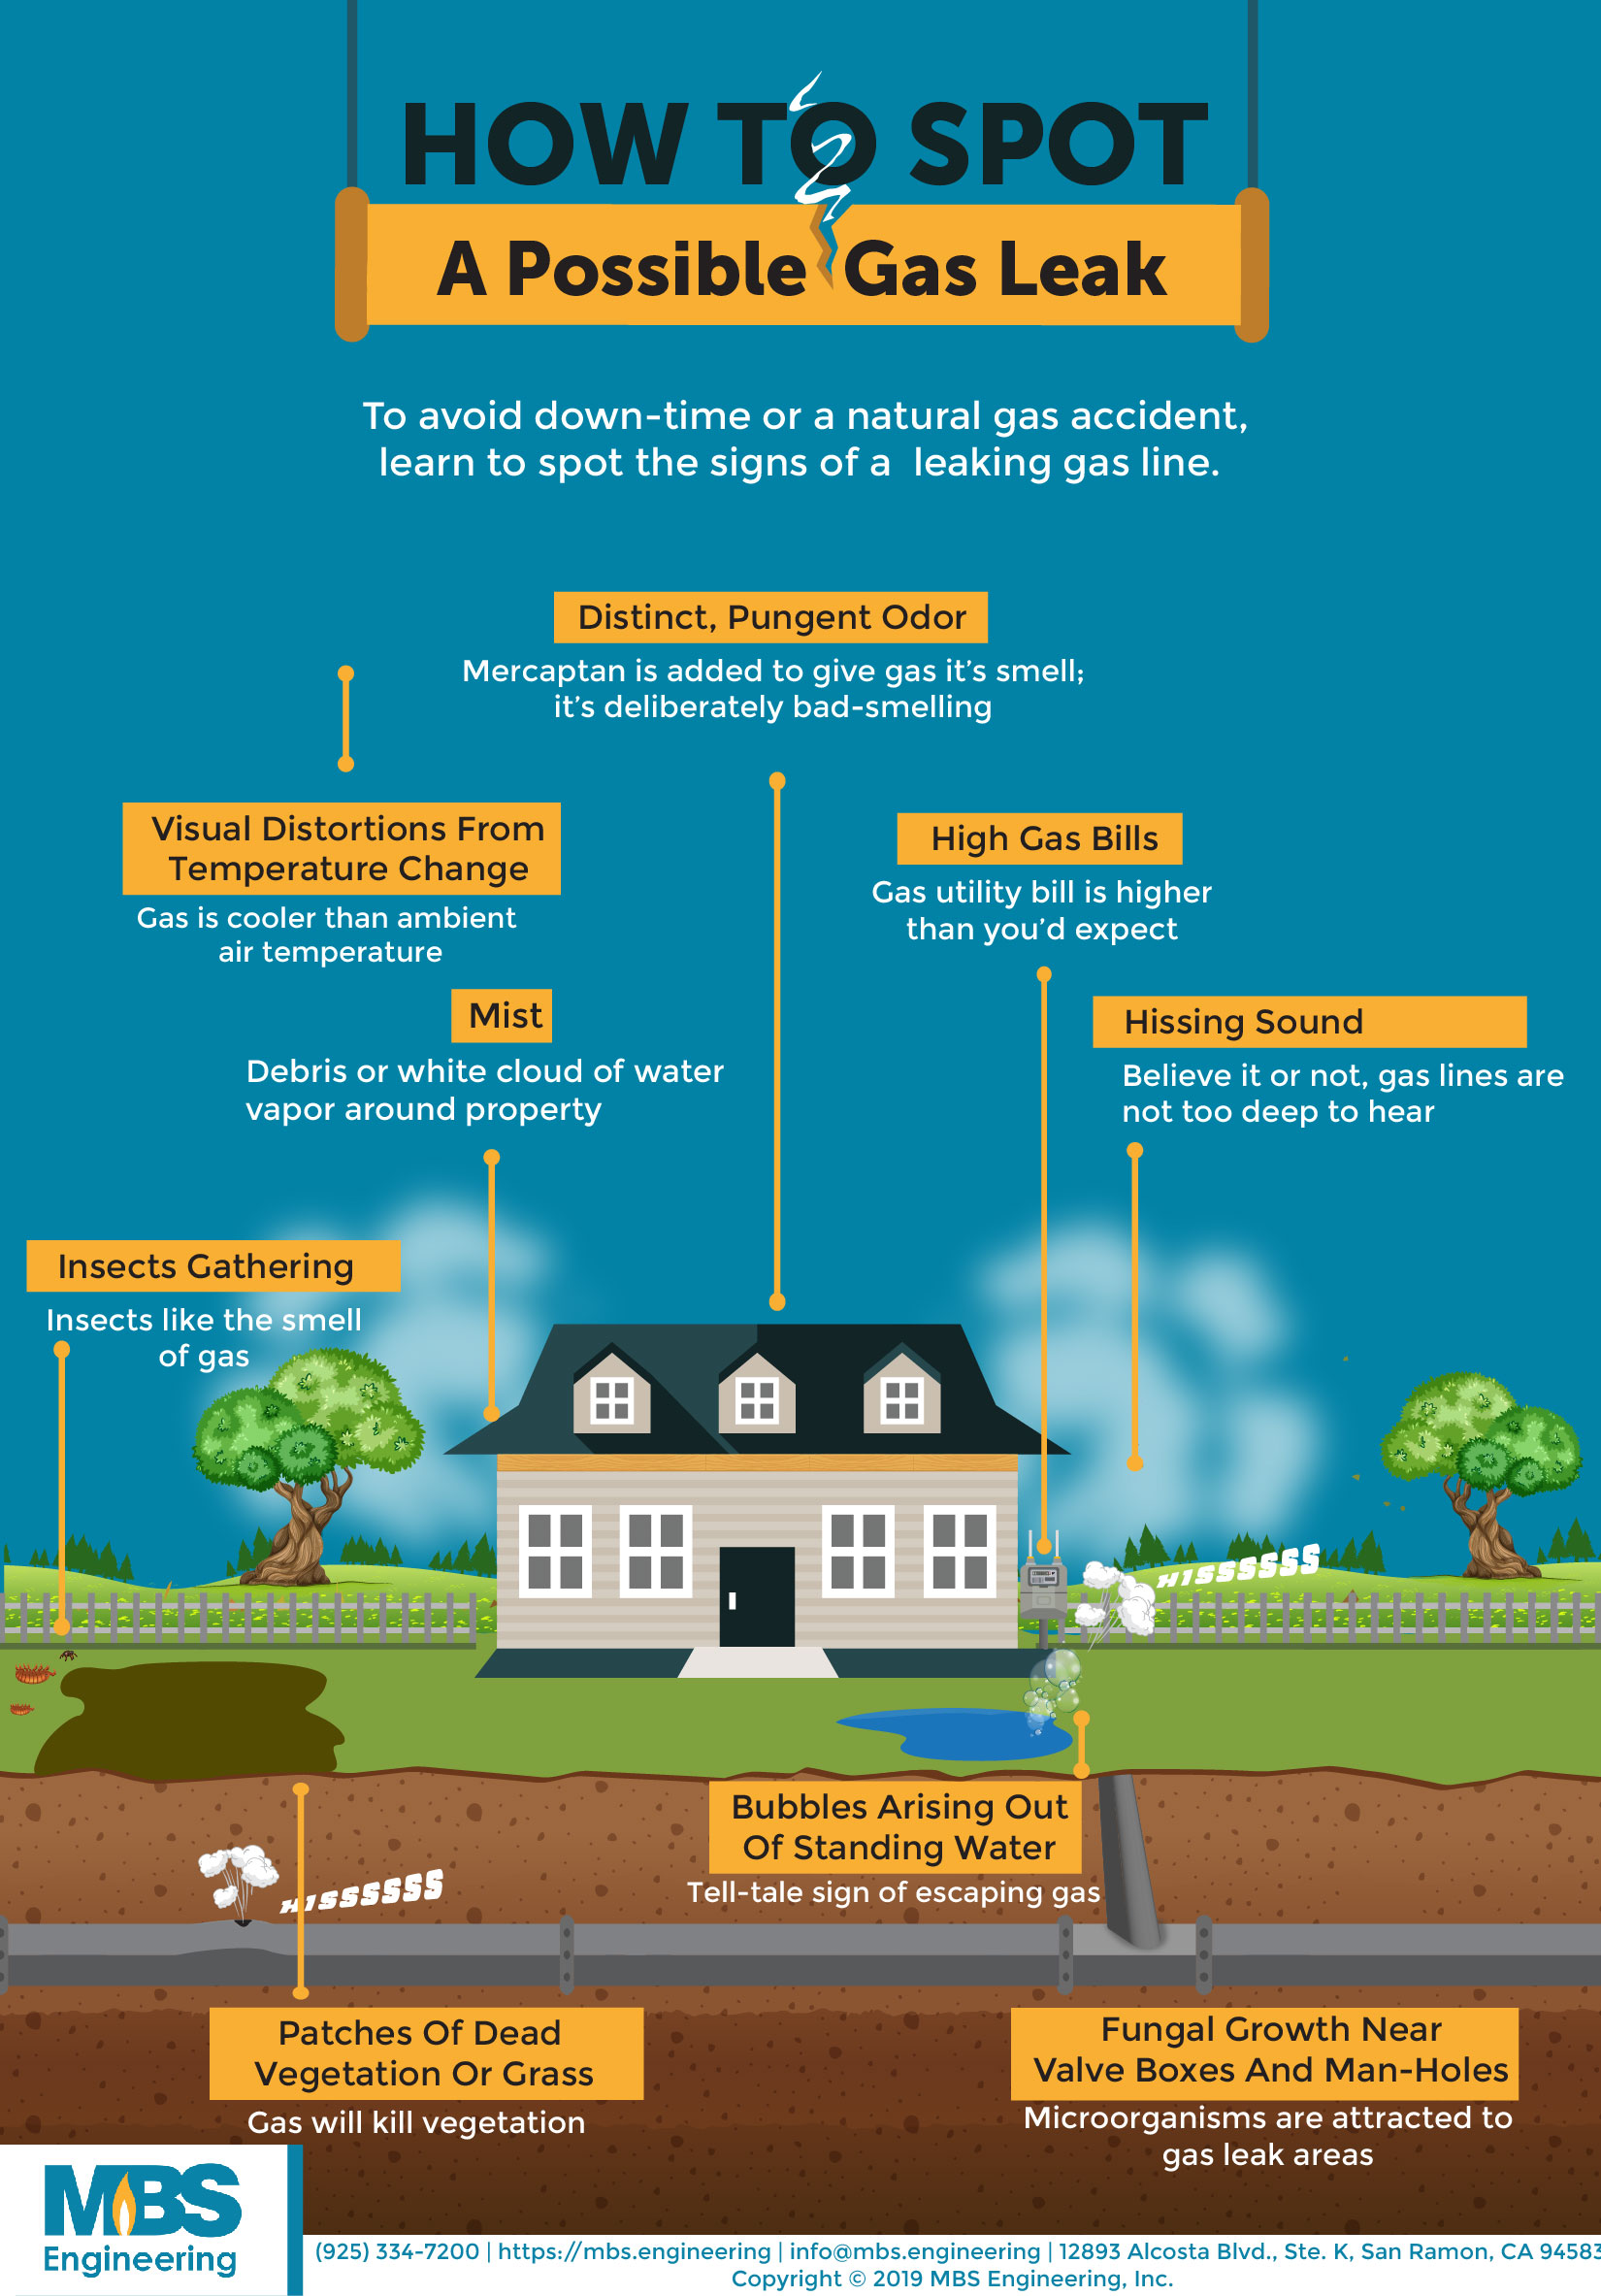 how_to_spot_a_gas_leak-infographic-lkrllc